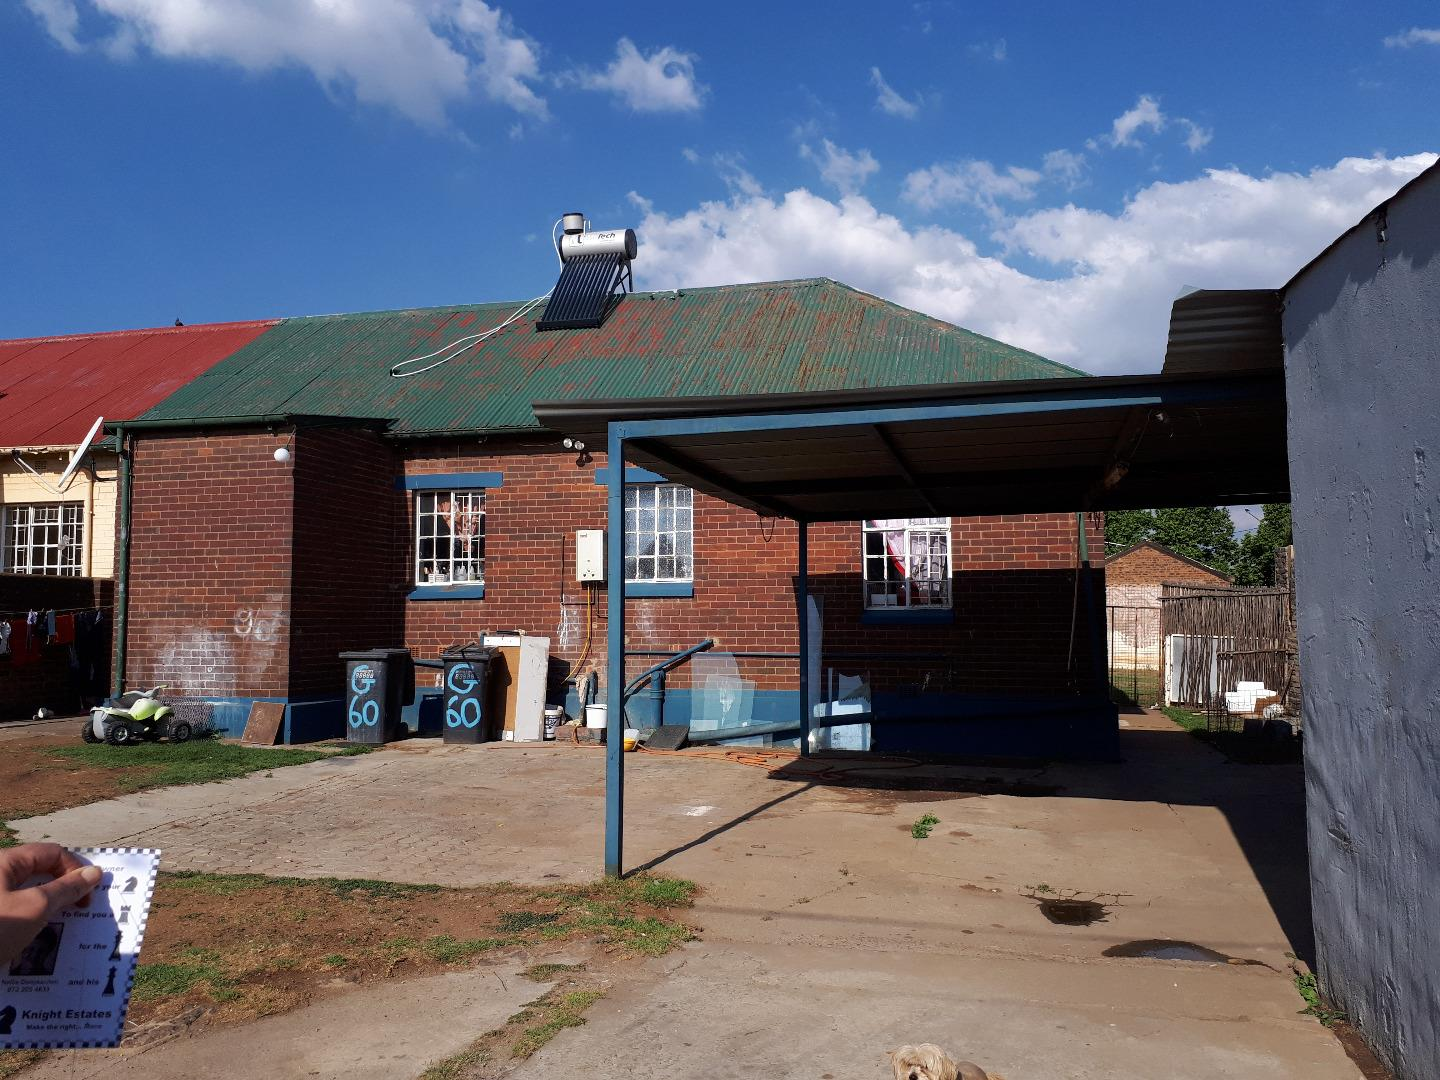 4 Bedroom  House for Sale in Krugersdorp - Gauteng